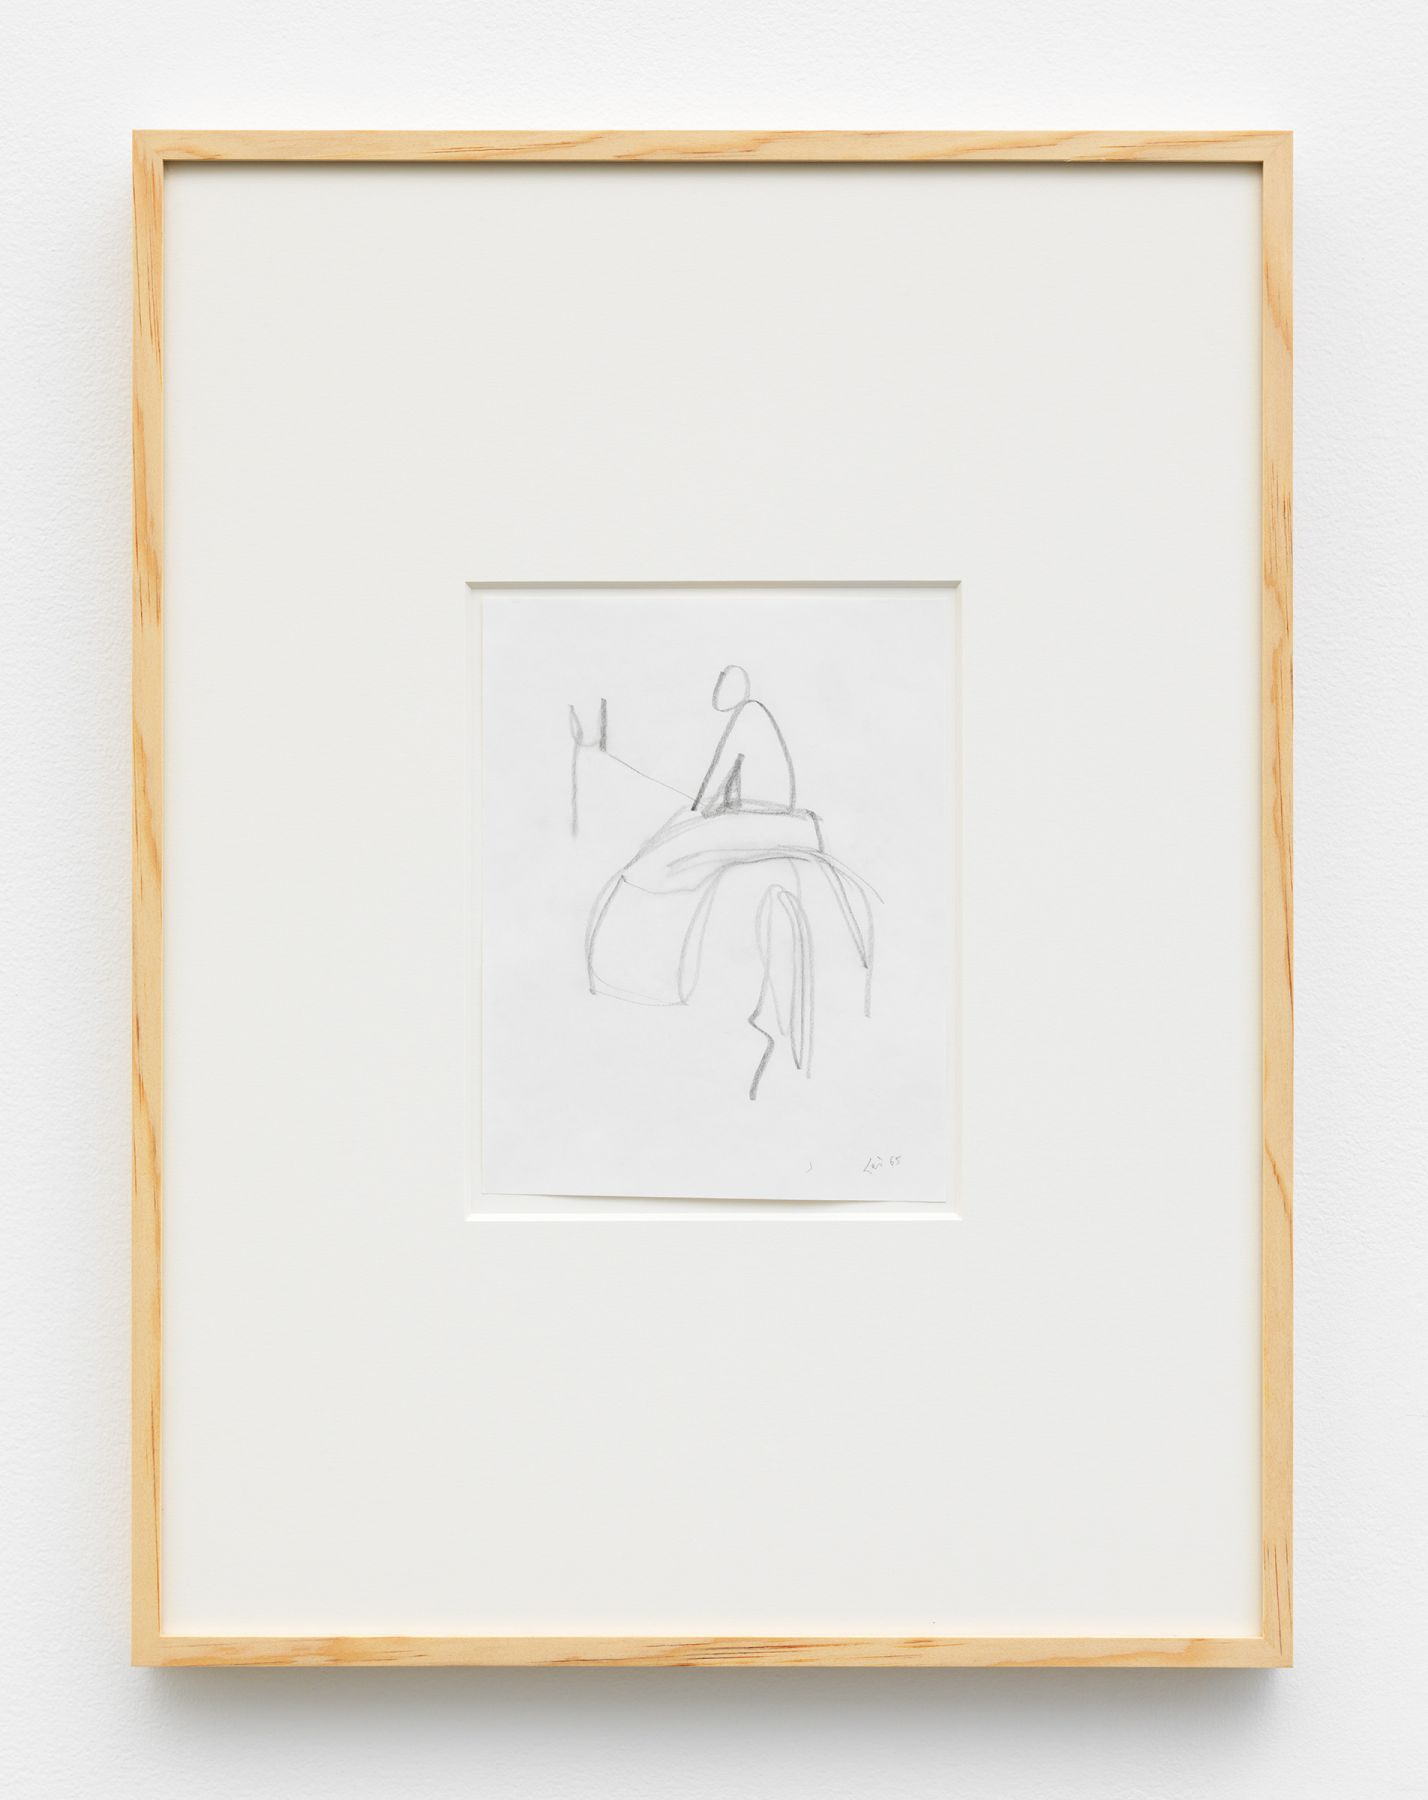 a small drawing on paper by italian artist maria lai for sale at a chelsea gallery